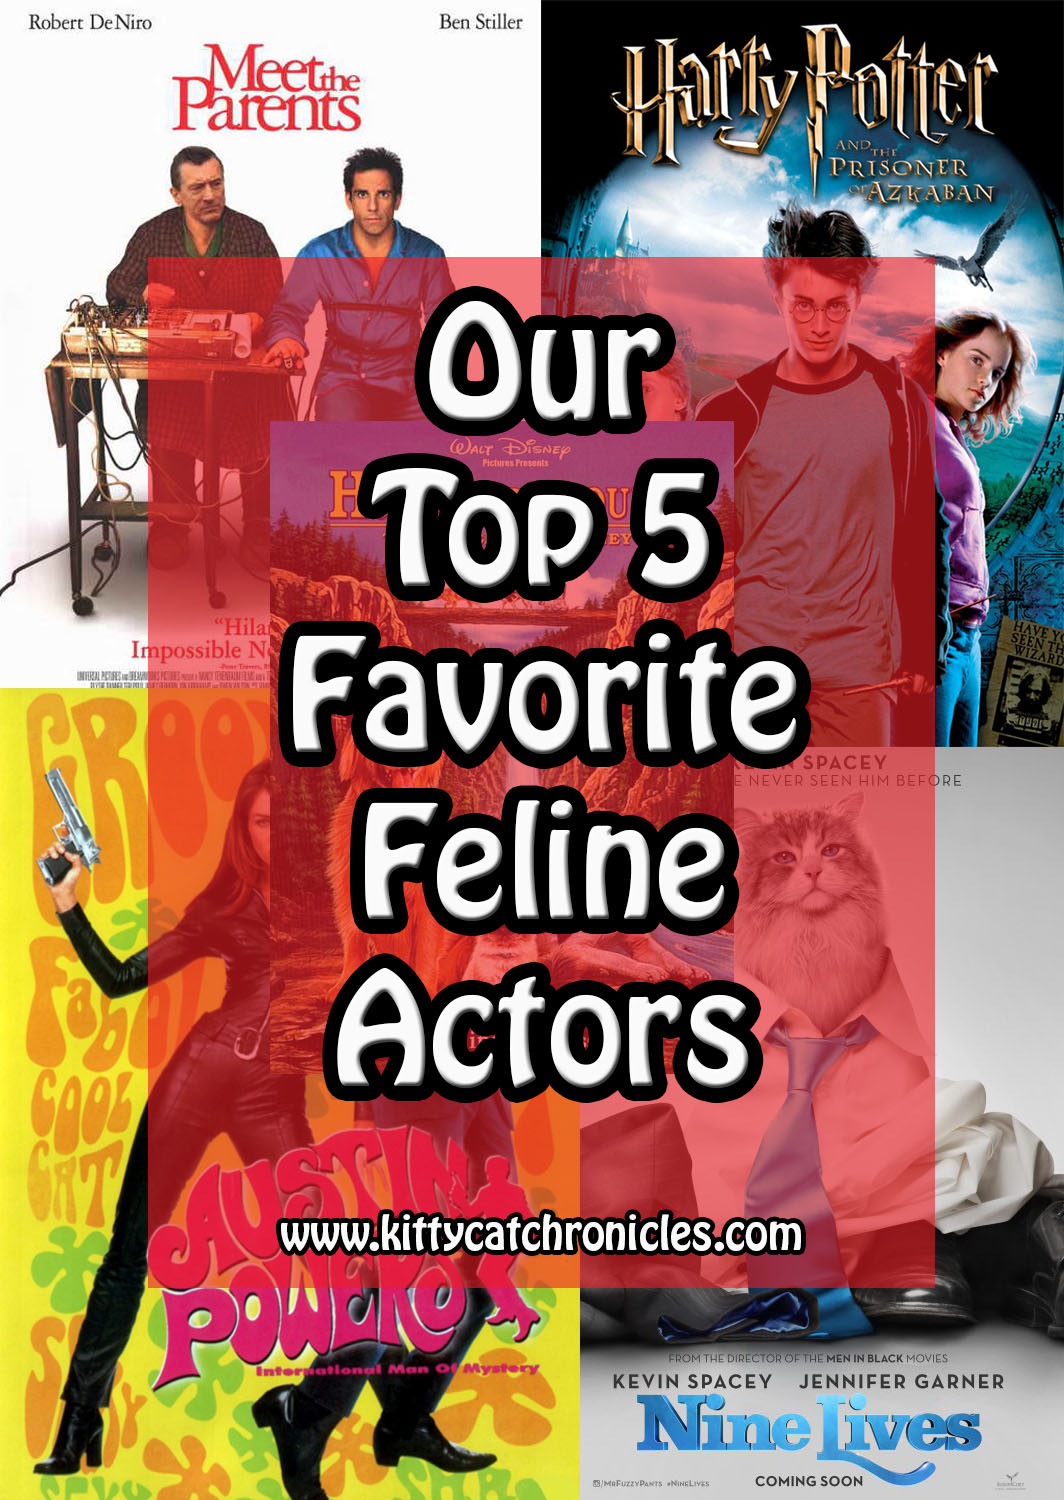 Our Top 5 Favorite Feline Actors